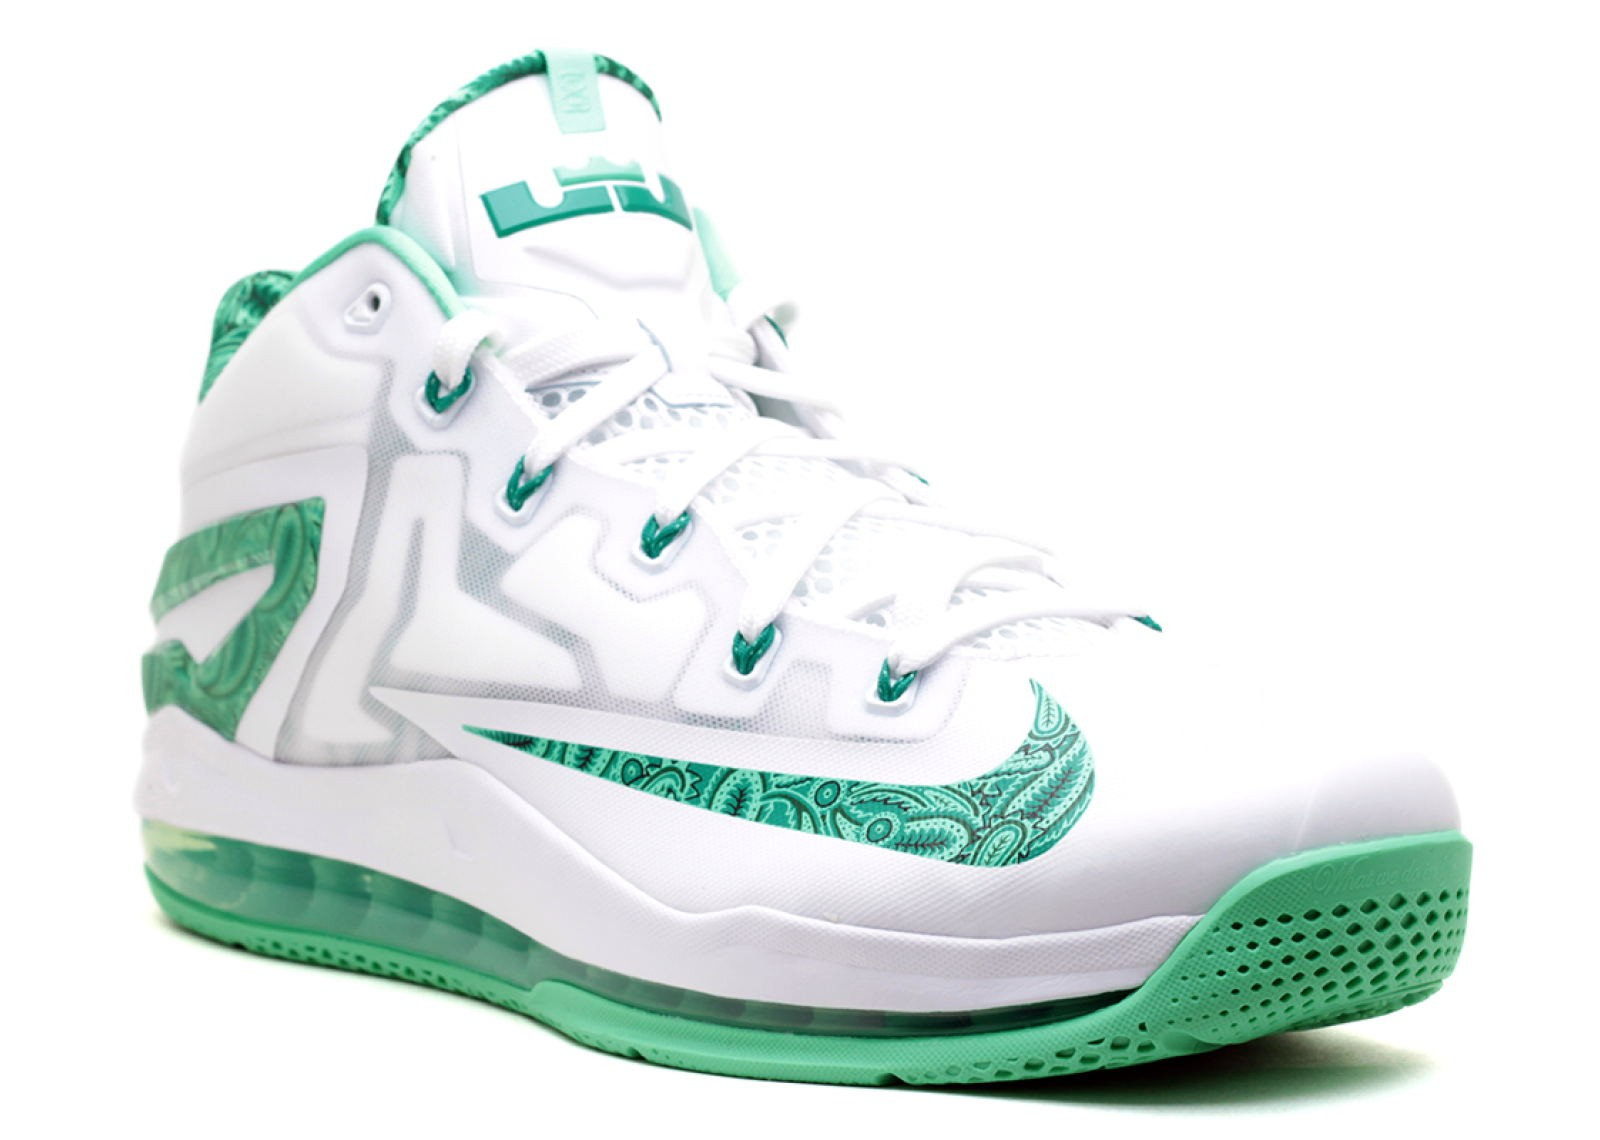 c6b297a92afd Max Lebron 11 Low Easter Green White Ltlcd Lcd Metallic 642849-100 ...